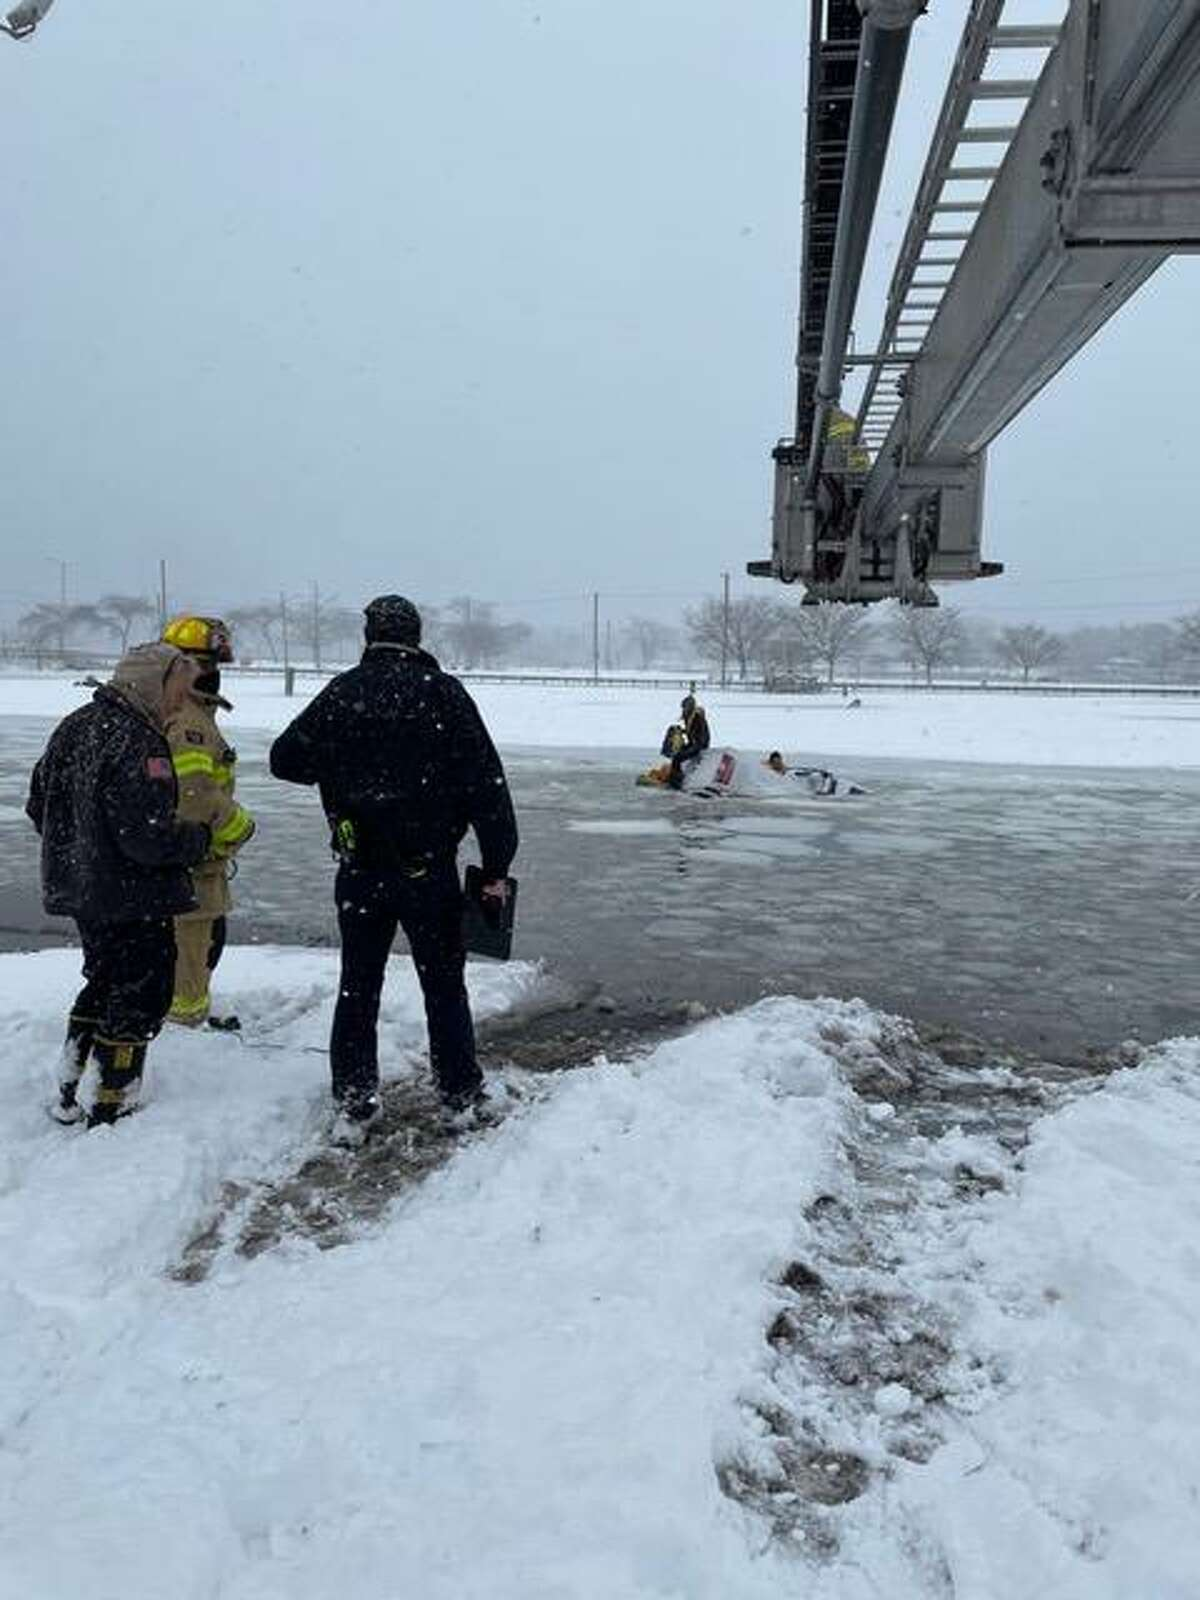 STAMFORD, Conn. - Firefighters pulled two people out of Long Island Sound Monday, Feb. 1, 2021, after their pickup truck went into the water at Cummings Park.